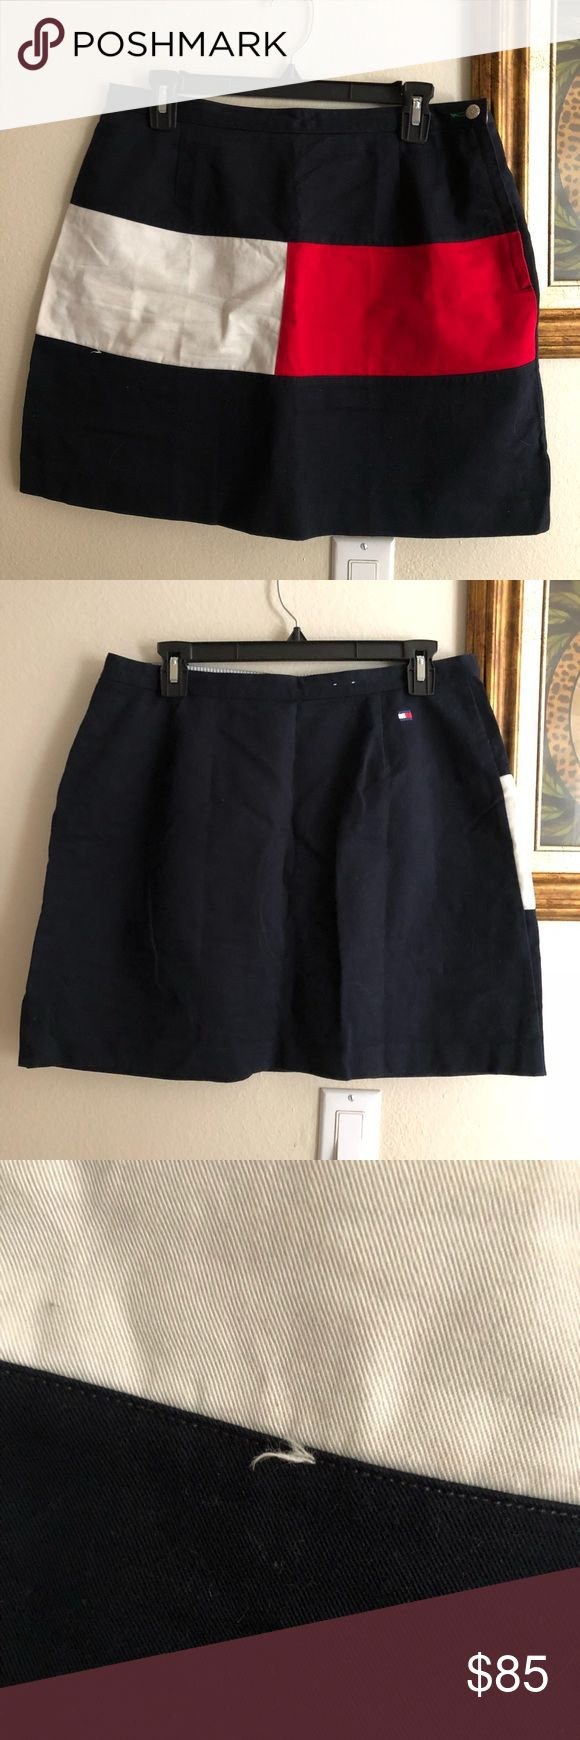 BIG LOGO Vintage Tommy Hilfiger Mini Skirt Size 14. Same skirt being sold for $150. Very rare find. Open to offers. See picture for loose string. Not noticeable at all. Tommy Hilfiger Skirts Mini